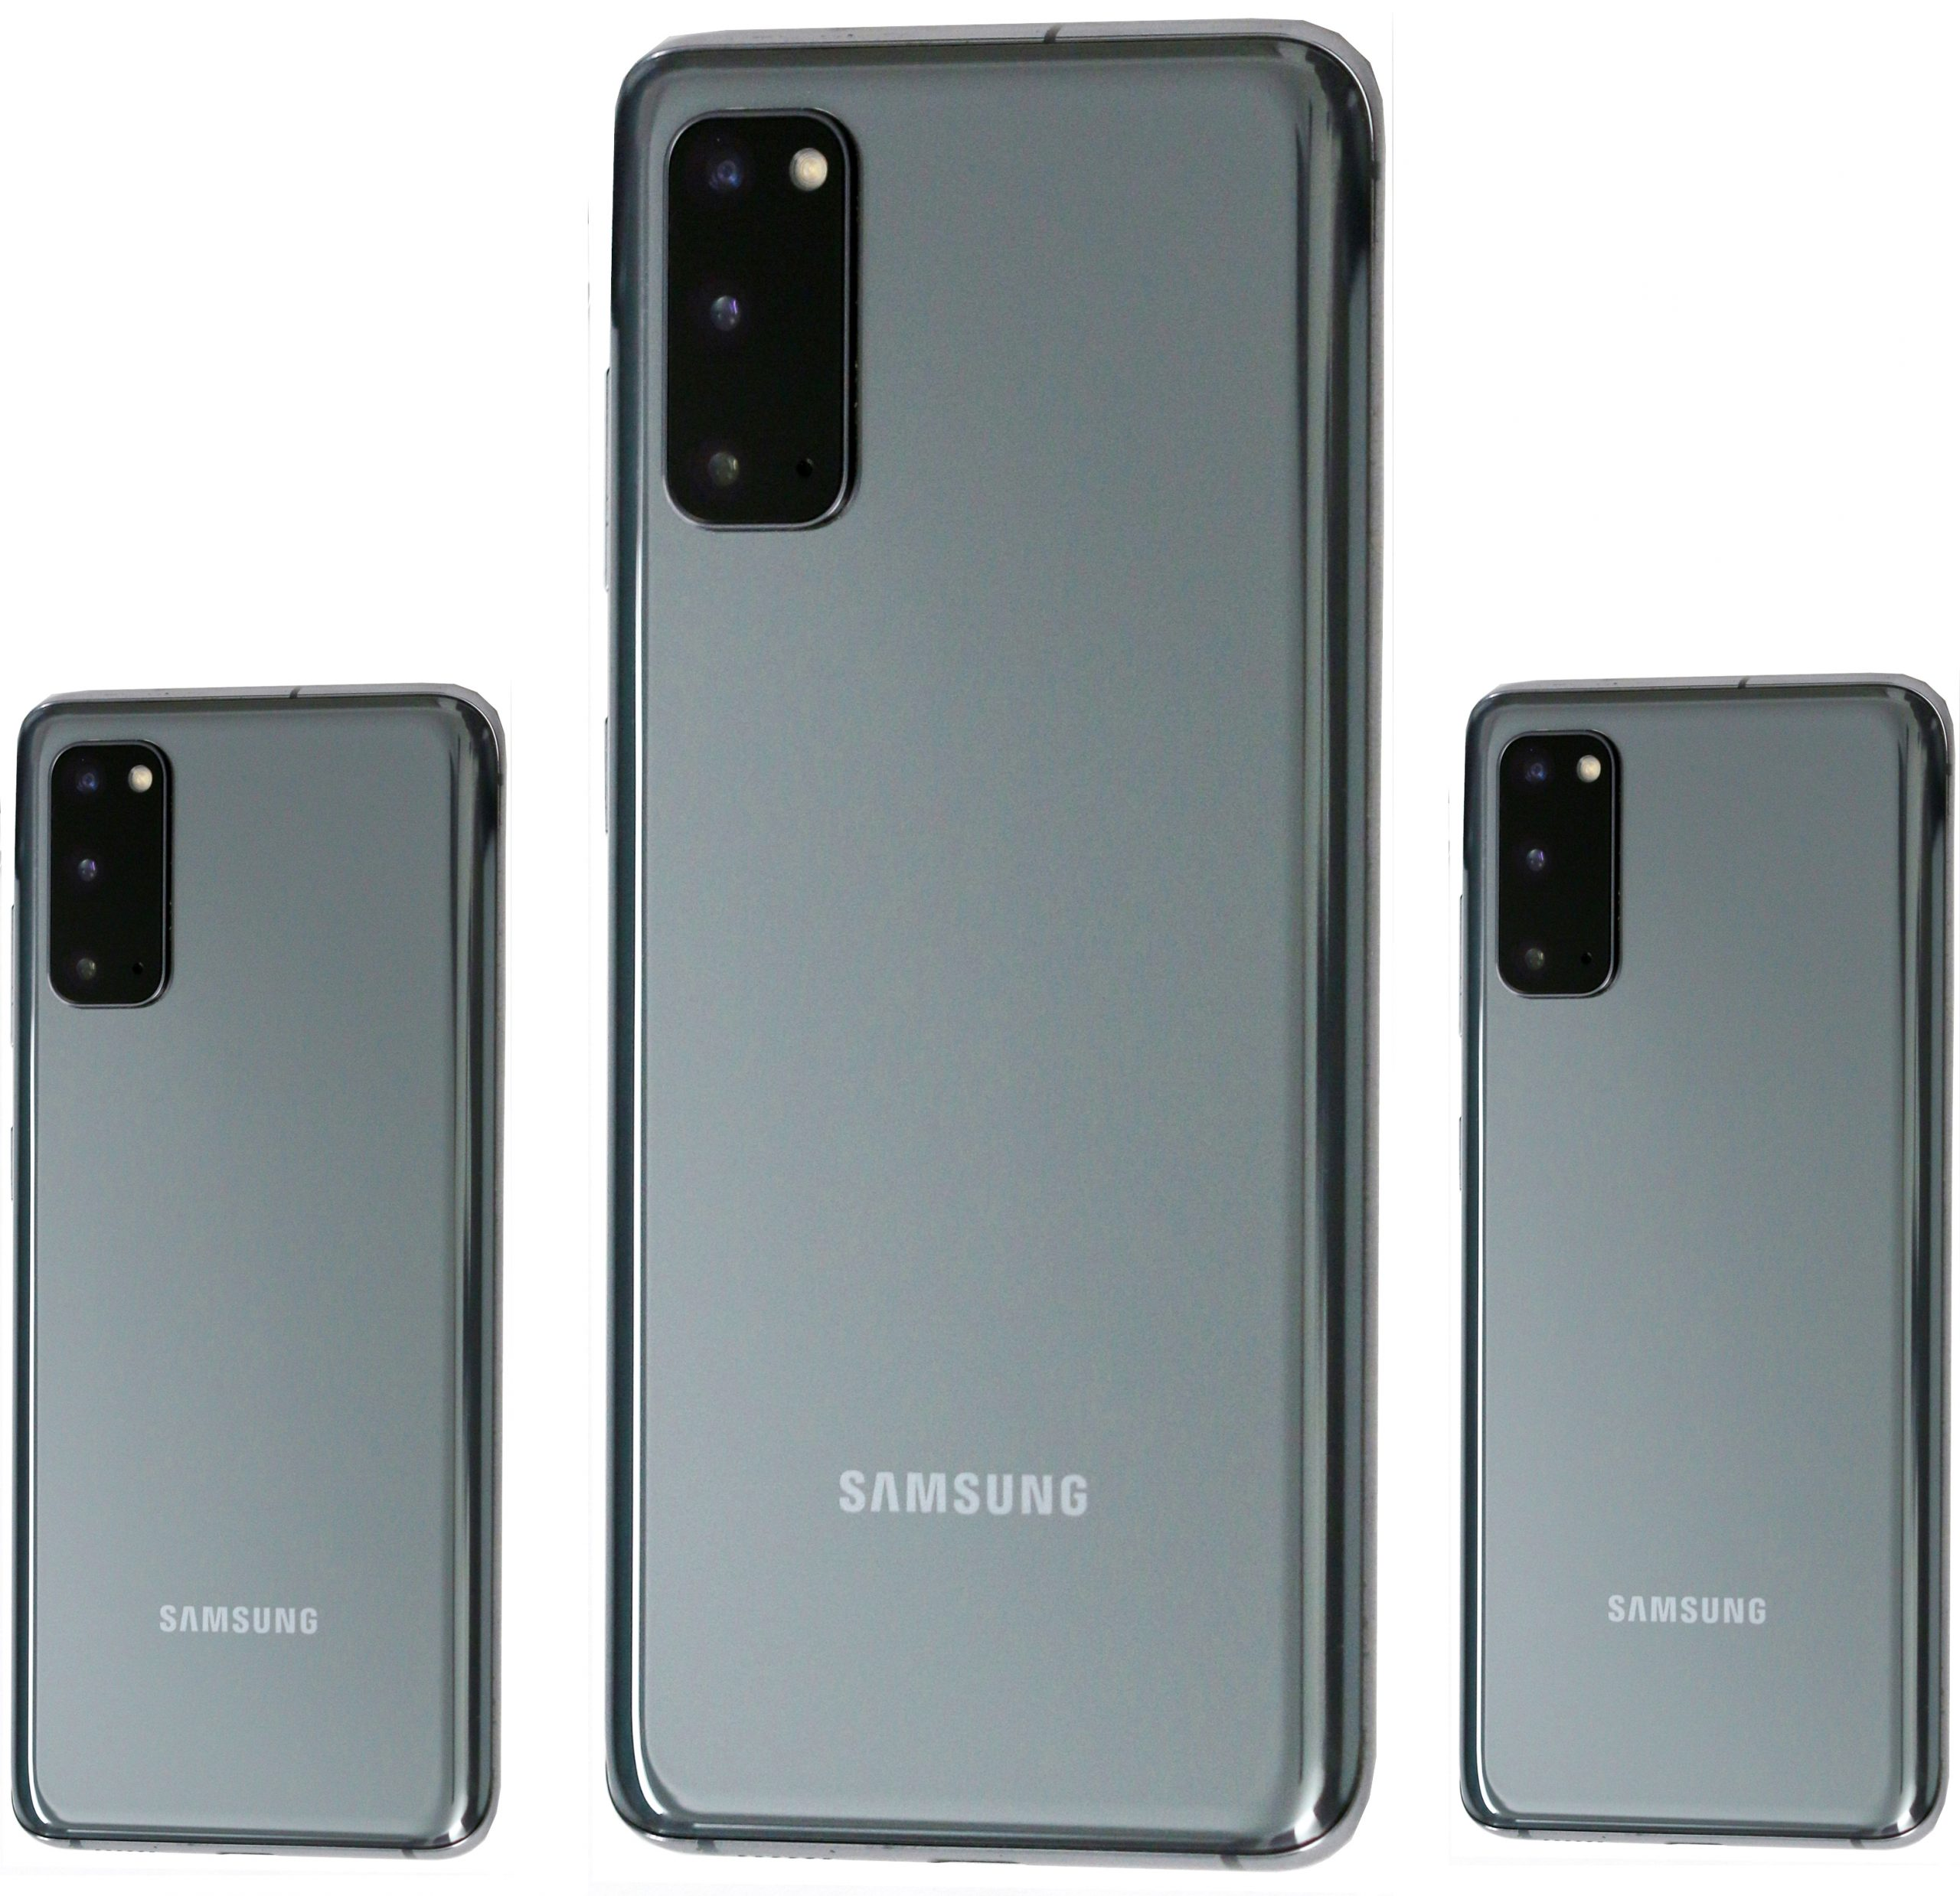 Samsung company mobile phones